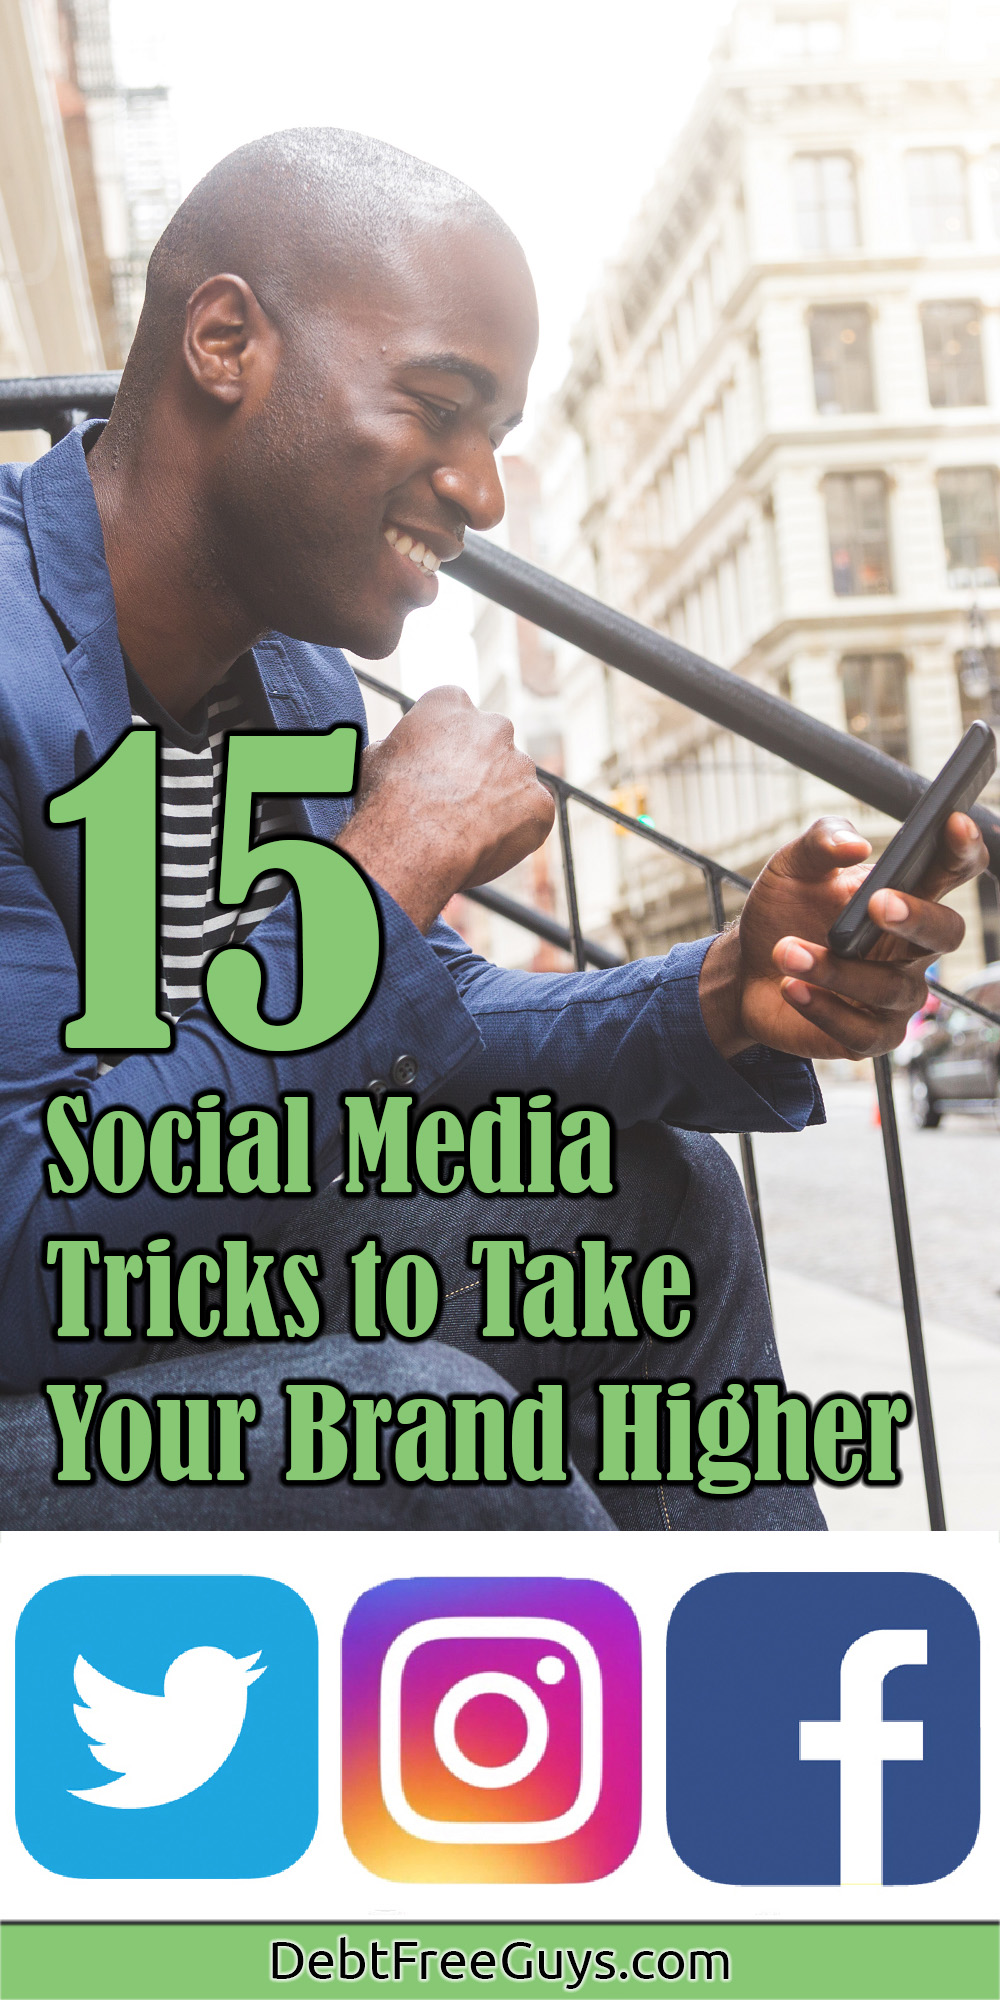 If you've started blogging or are trying to grow your personal brand, social media seems scary cause it's so much. This podcast breaks down everything you need to get started. Once you start, you won't stop!